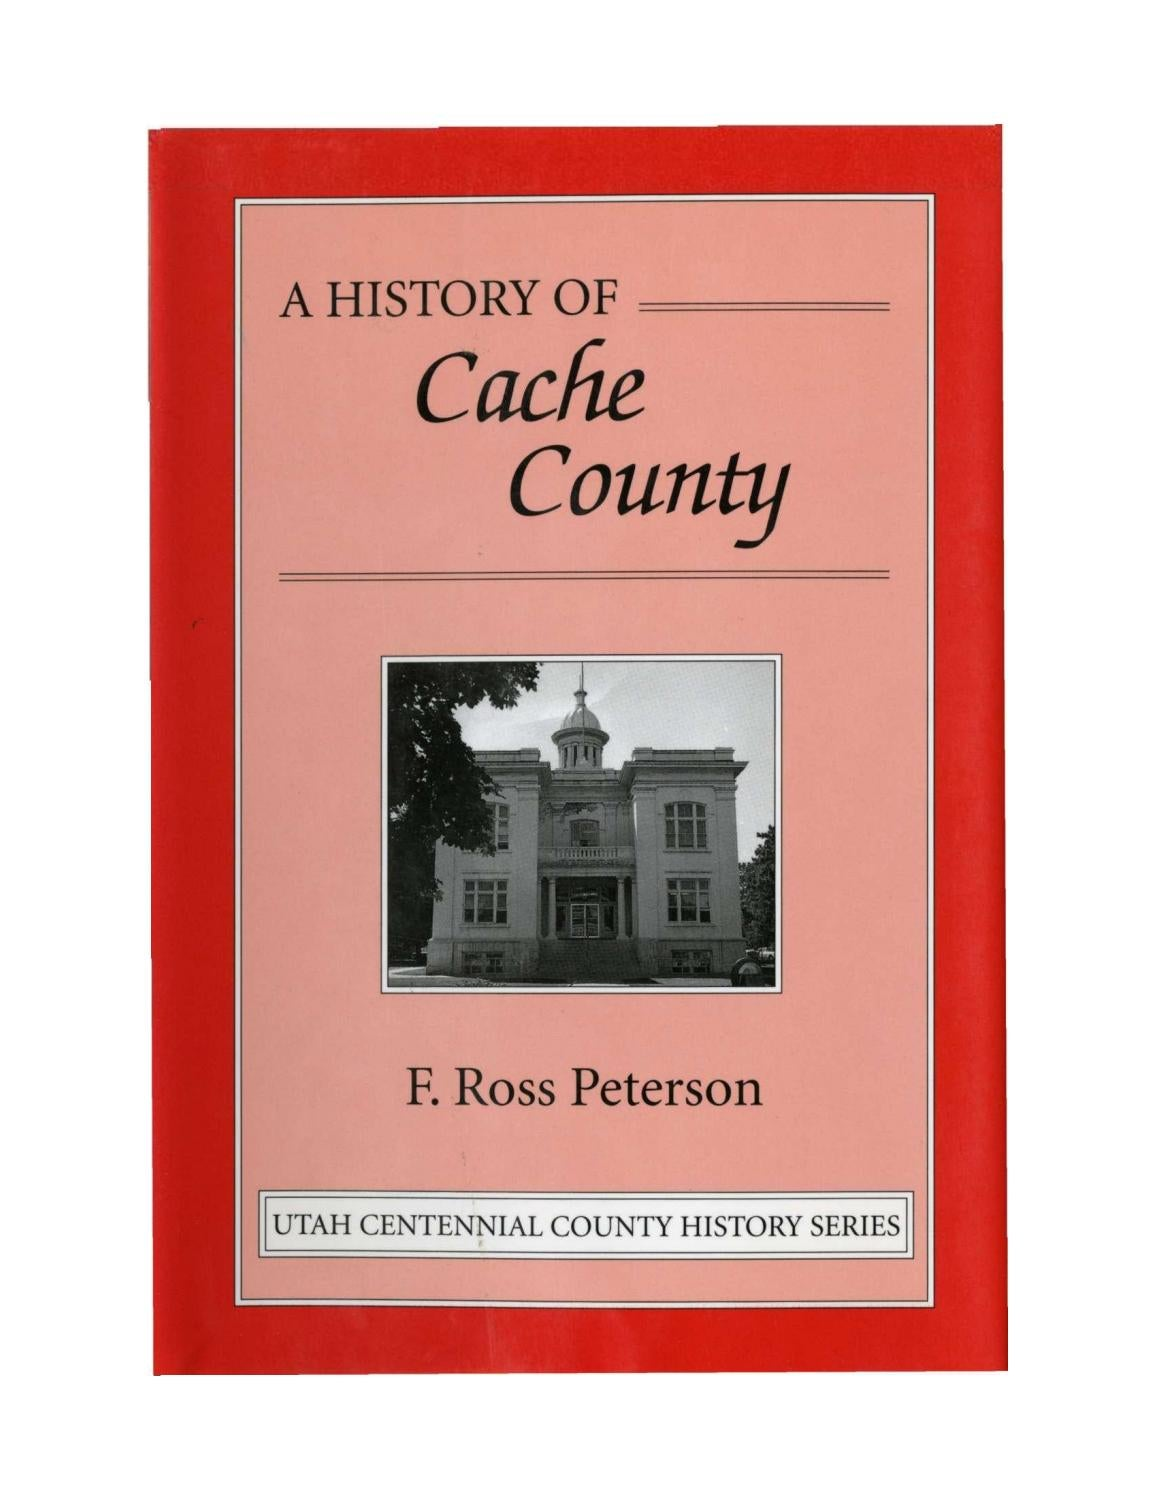 Utah Centennial County History Series Cache County 1997 By